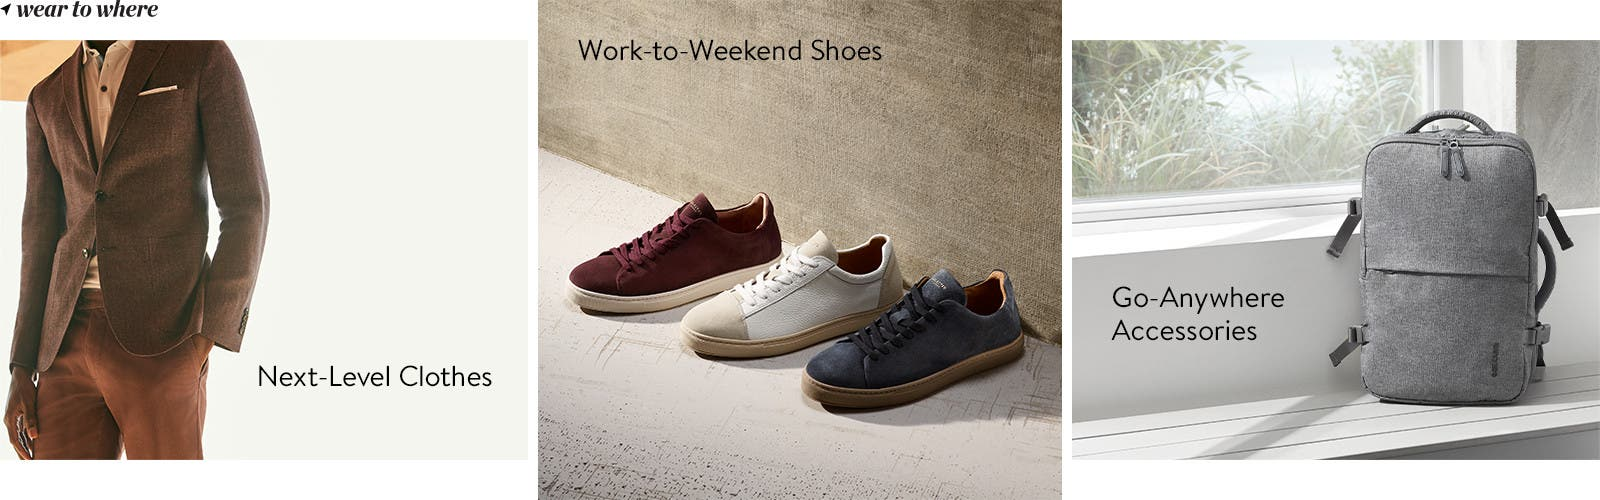 Business casual clothes, shoes and accessories for men.